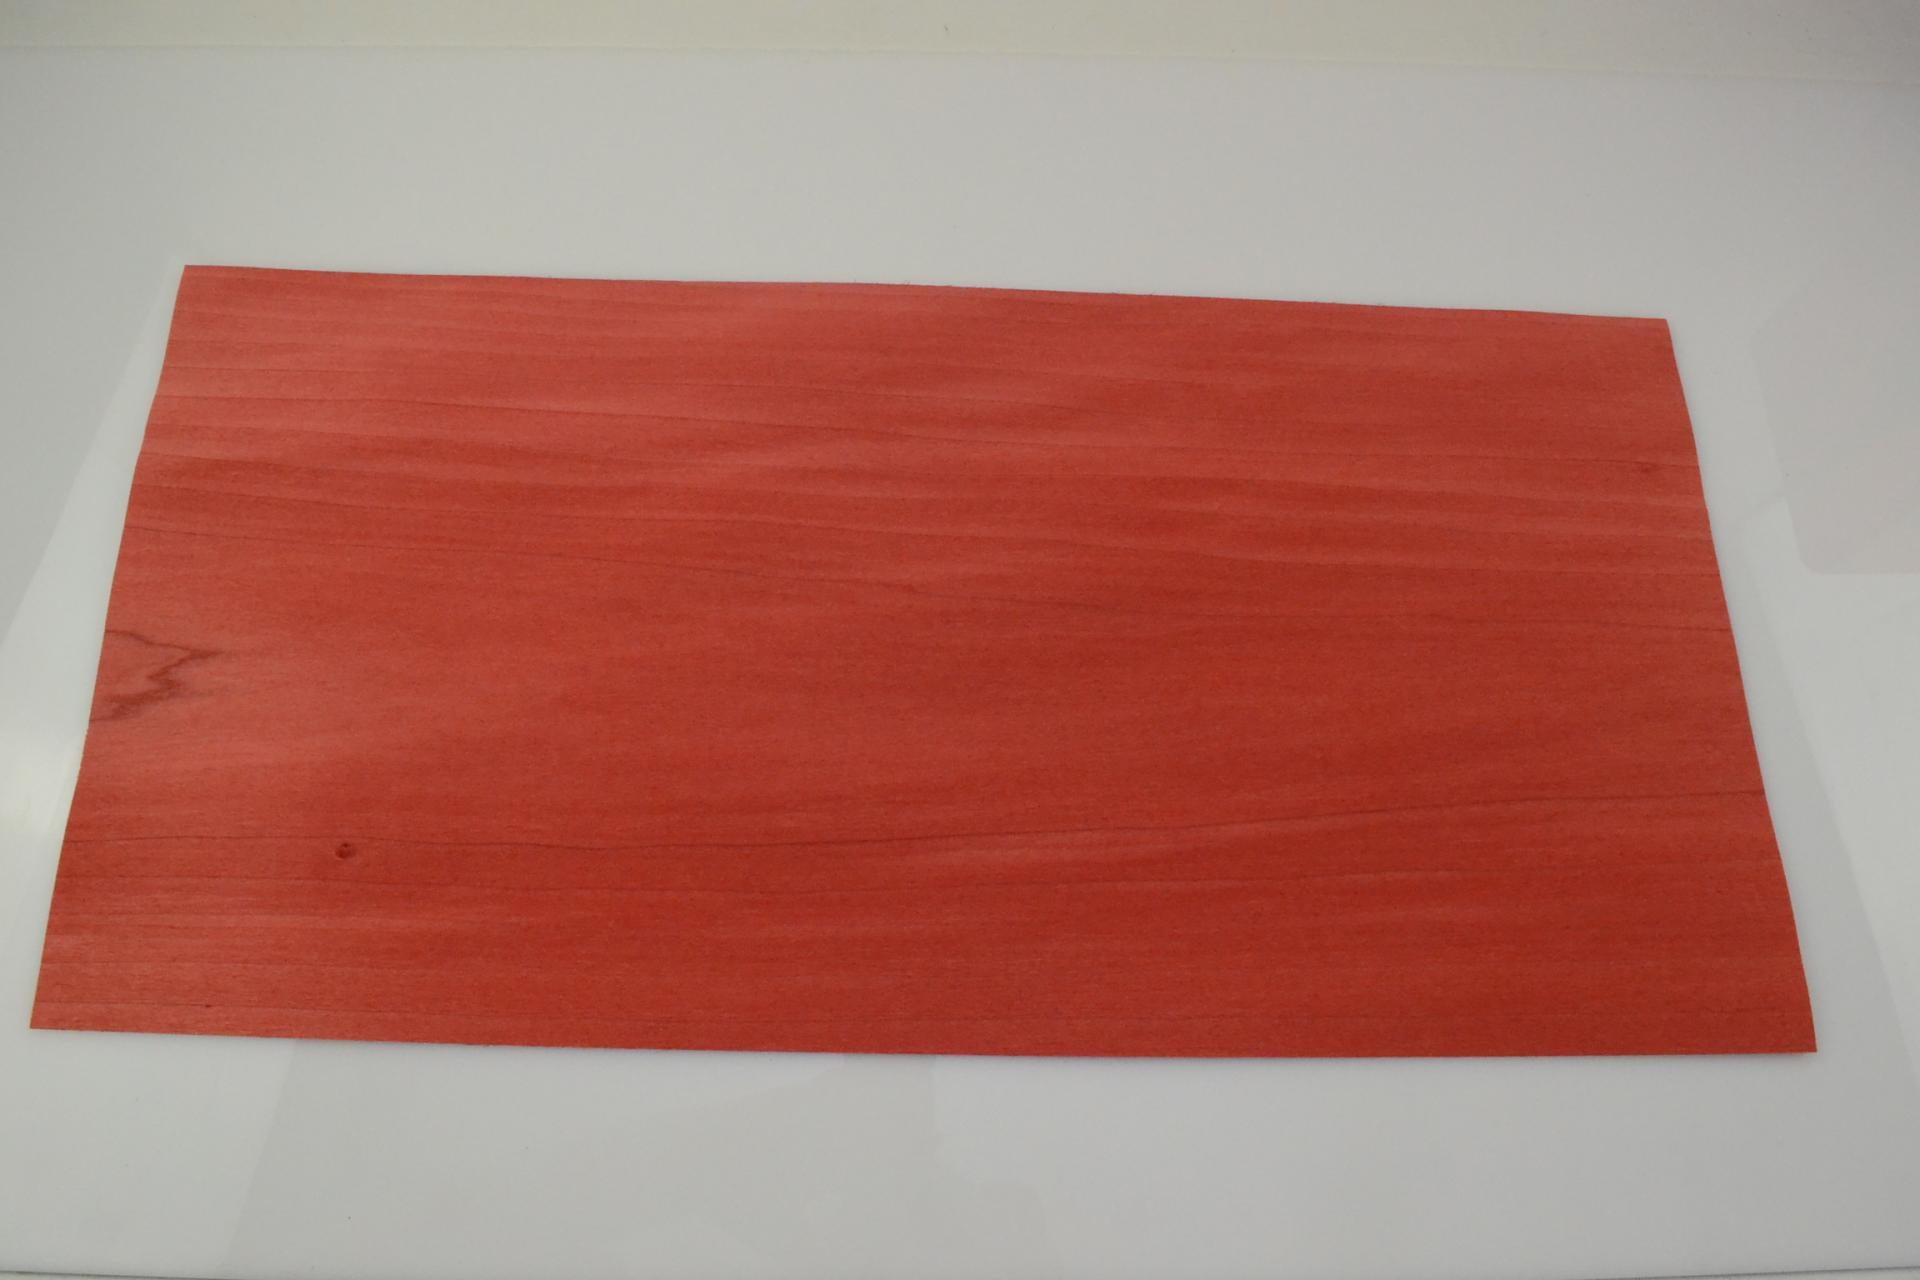 196a placage tuliper rouge 1